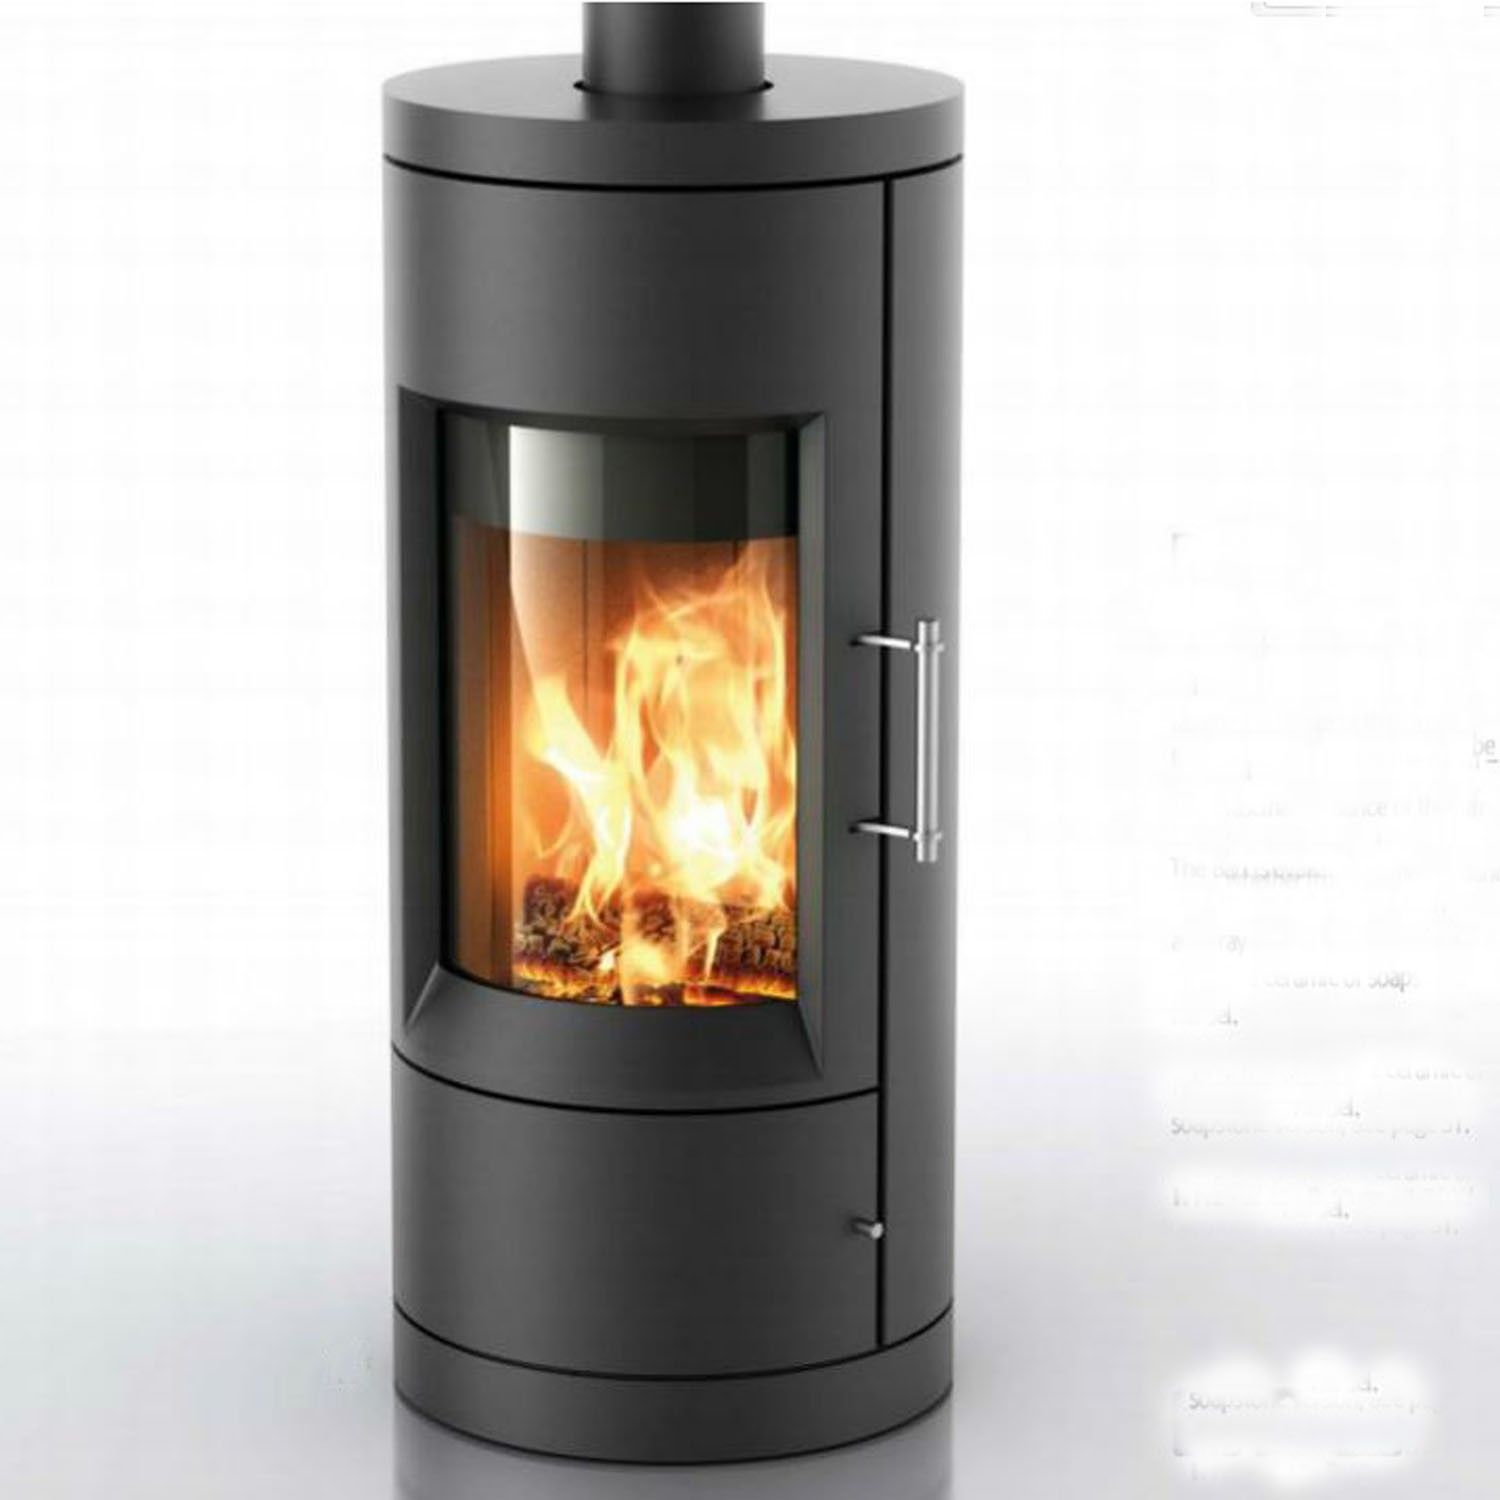 For Guest Space Hearthstone BARI 8170 wood stove like this look a